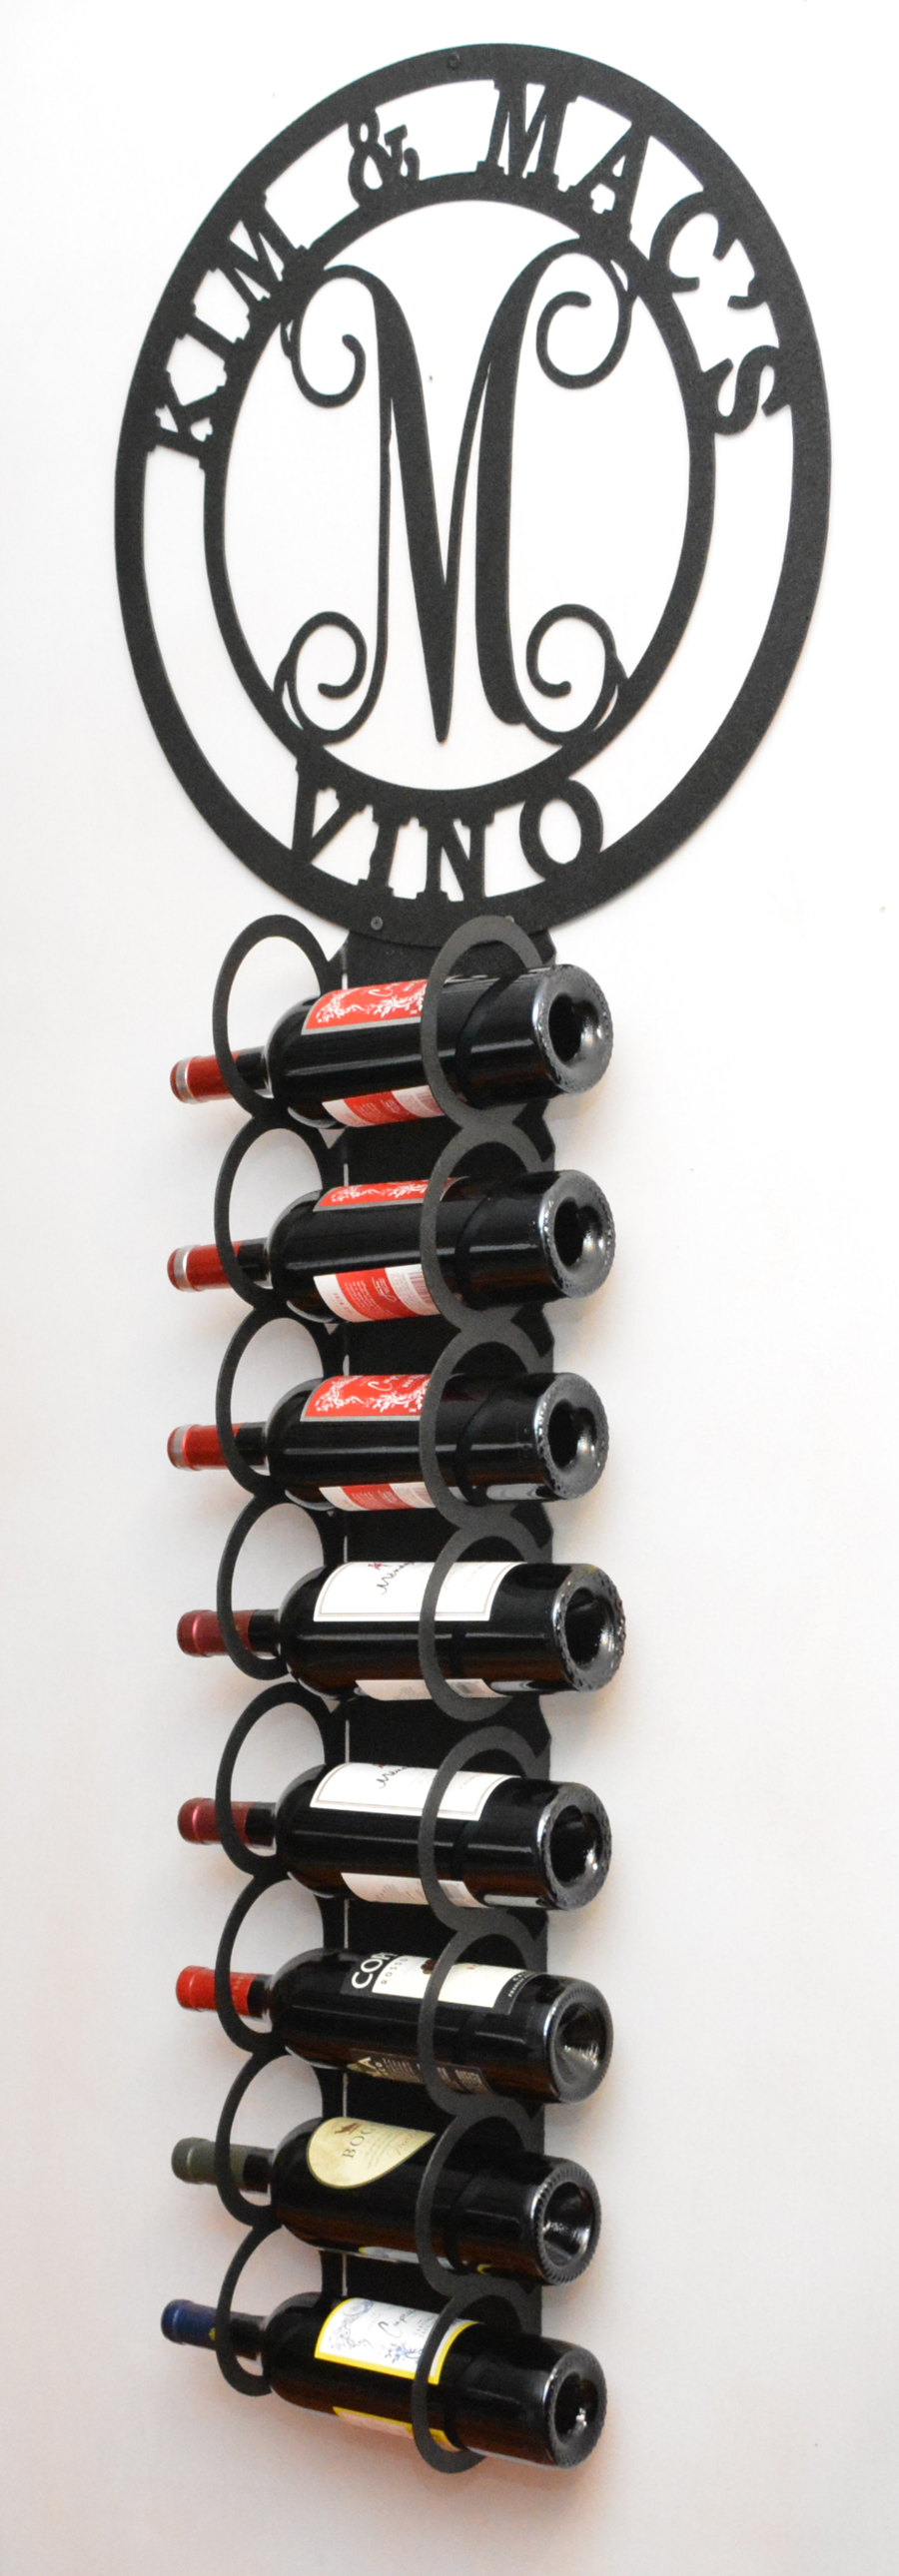 hover to zoom - Metal Wine Rack